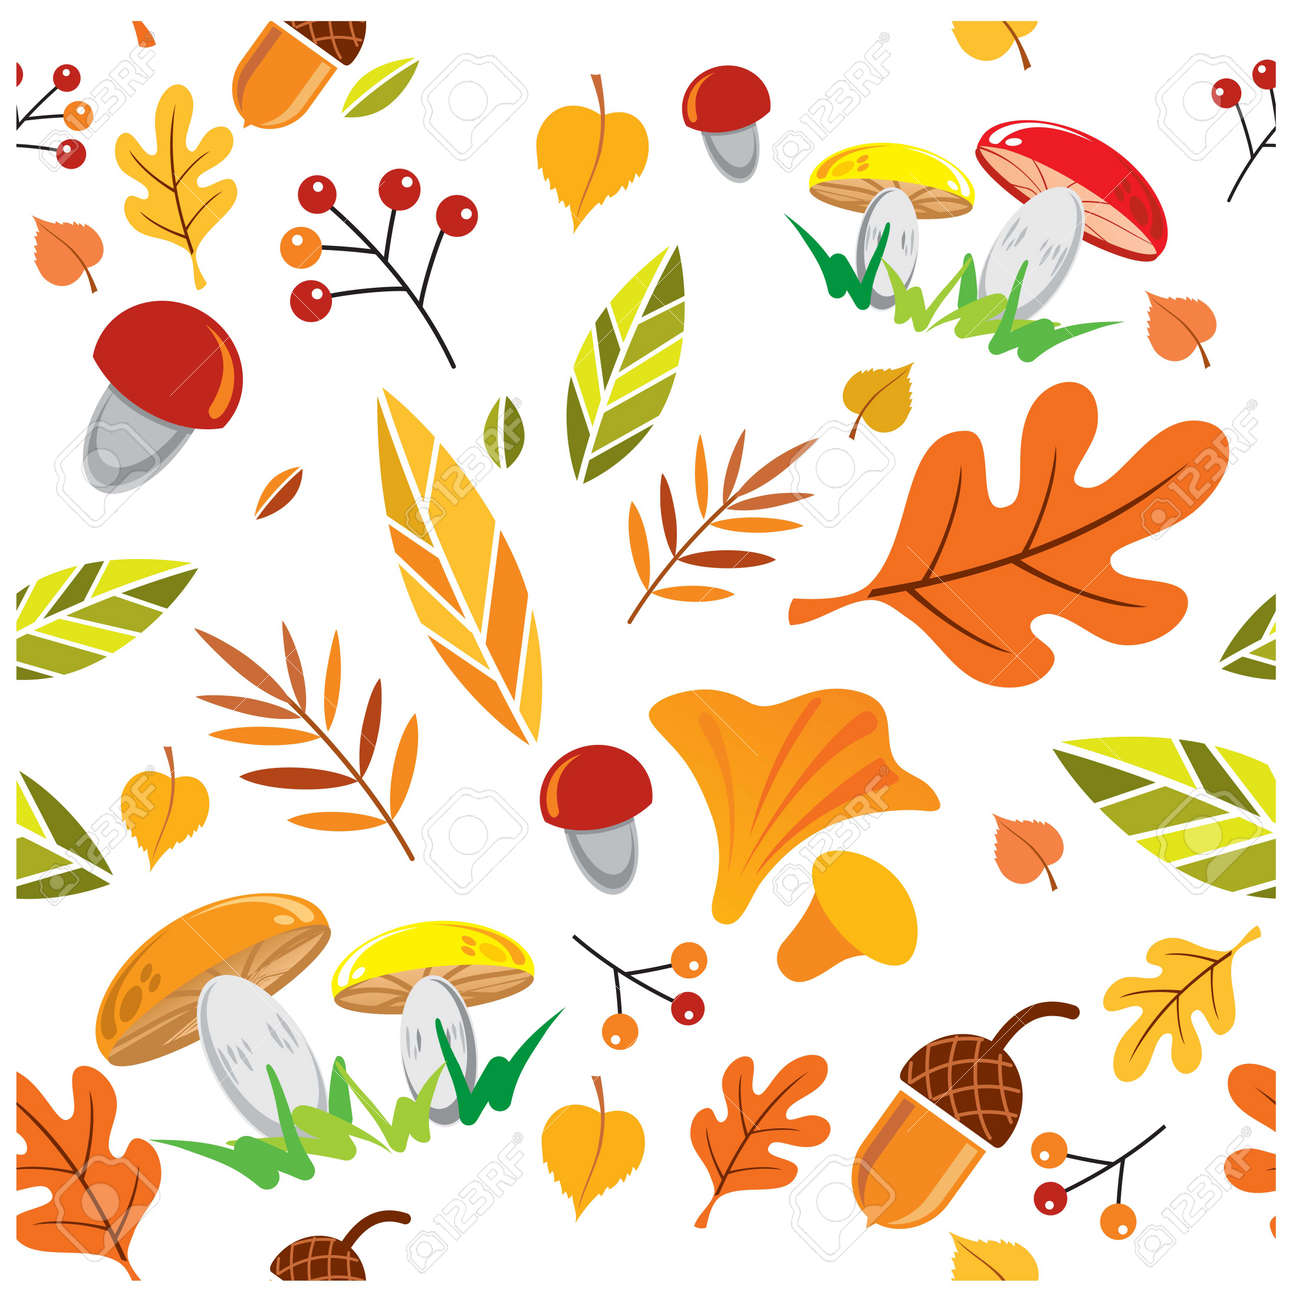 vector seamless autumn pattern, leaves, berries, mushrooms on white background - 153330588